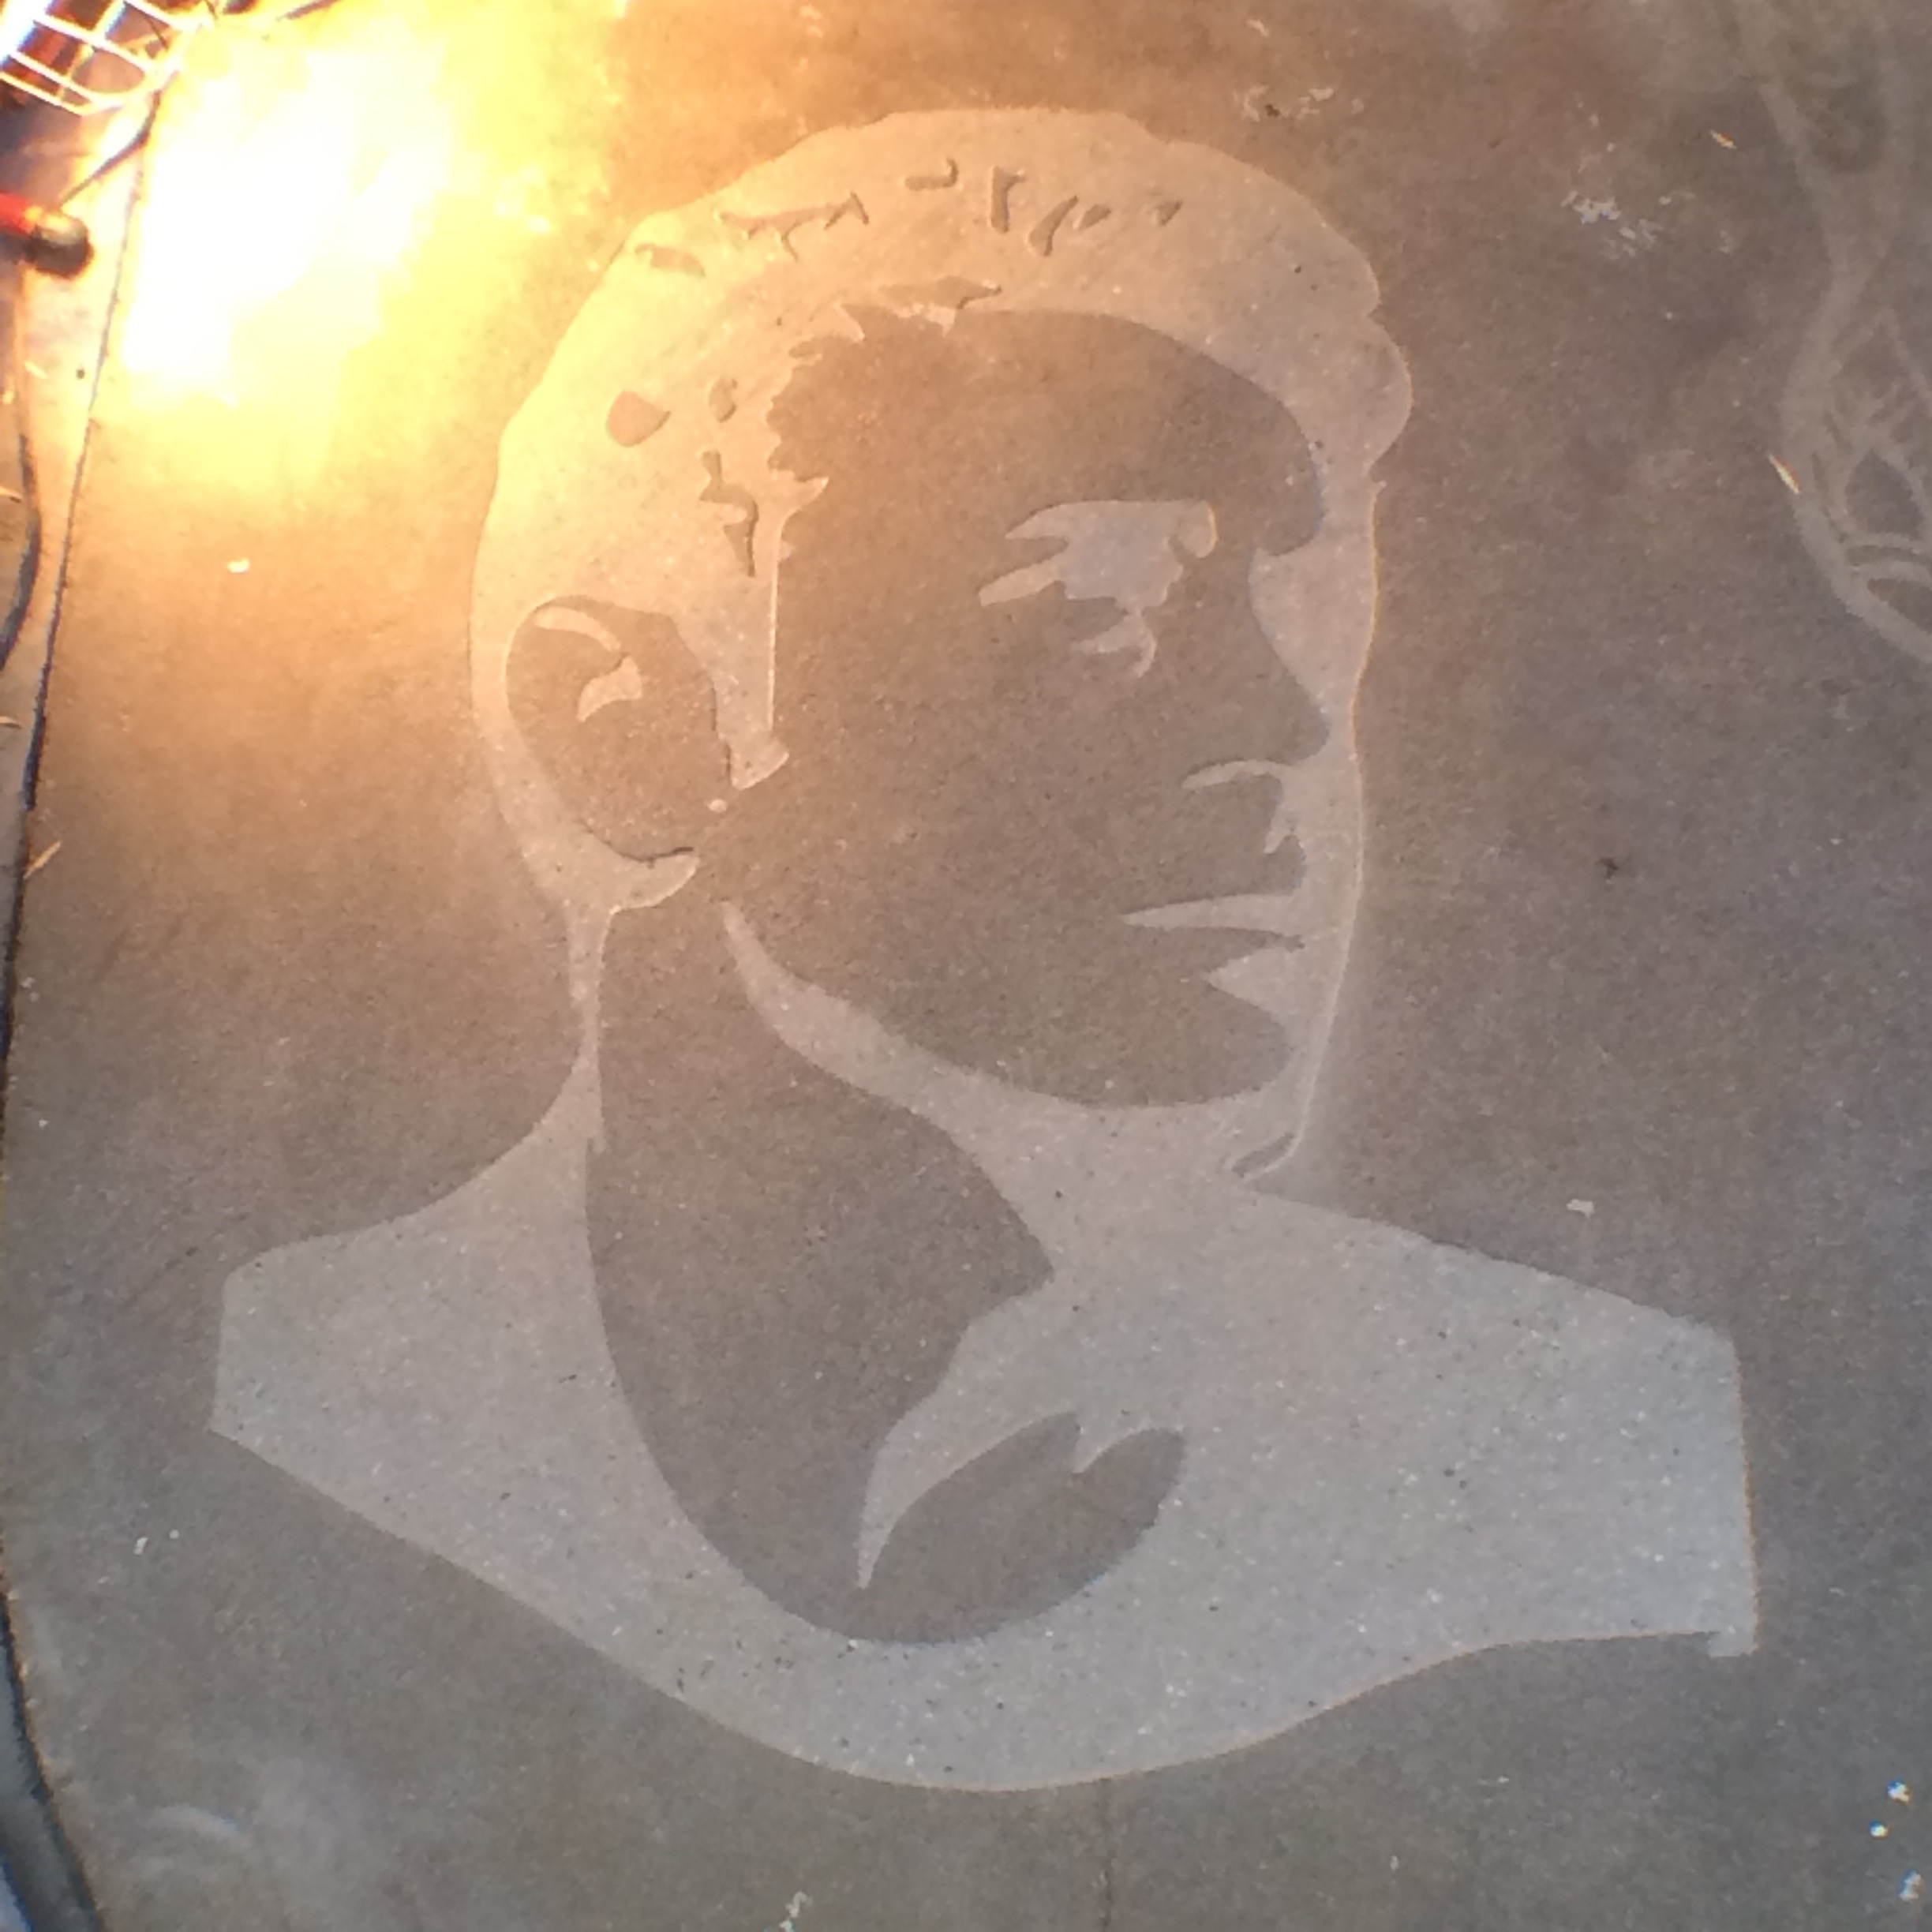 James Dean Engraving